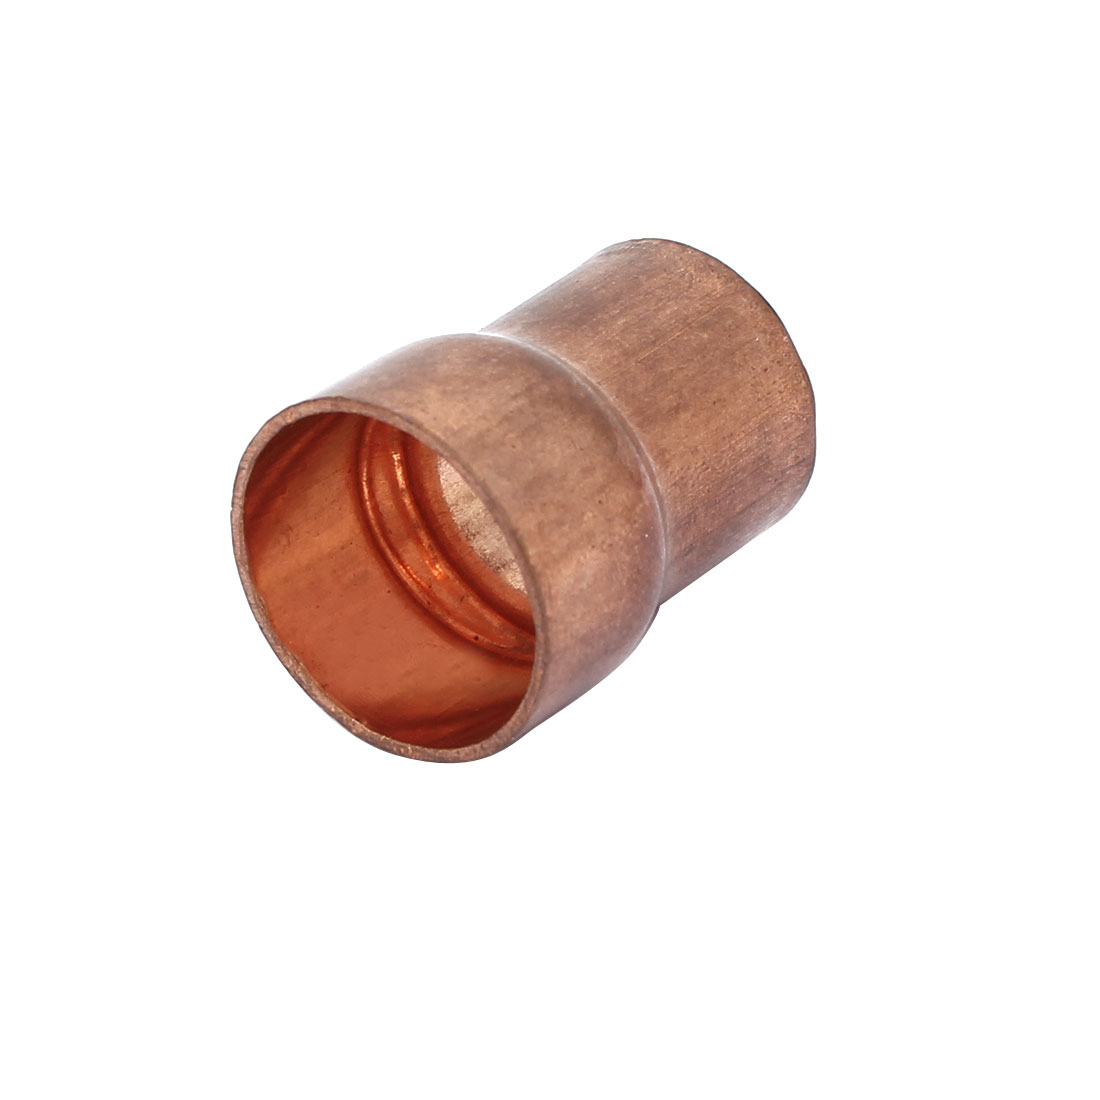 19mmx16mm Tube Air Conditioner Copper Reducer Straight Fitting